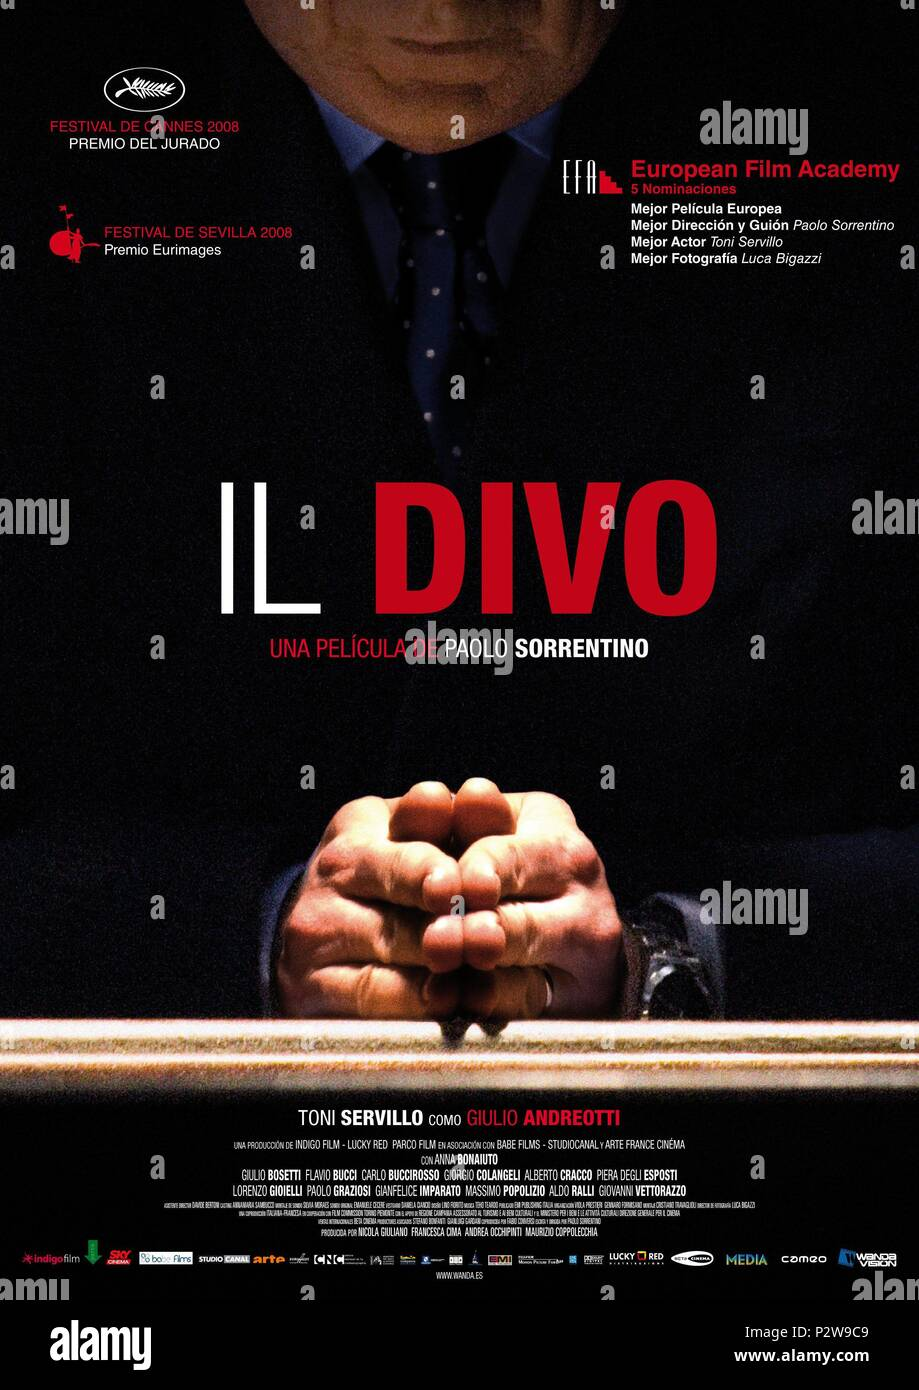 Il divo stock photos il divo stock images alamy for Divo film